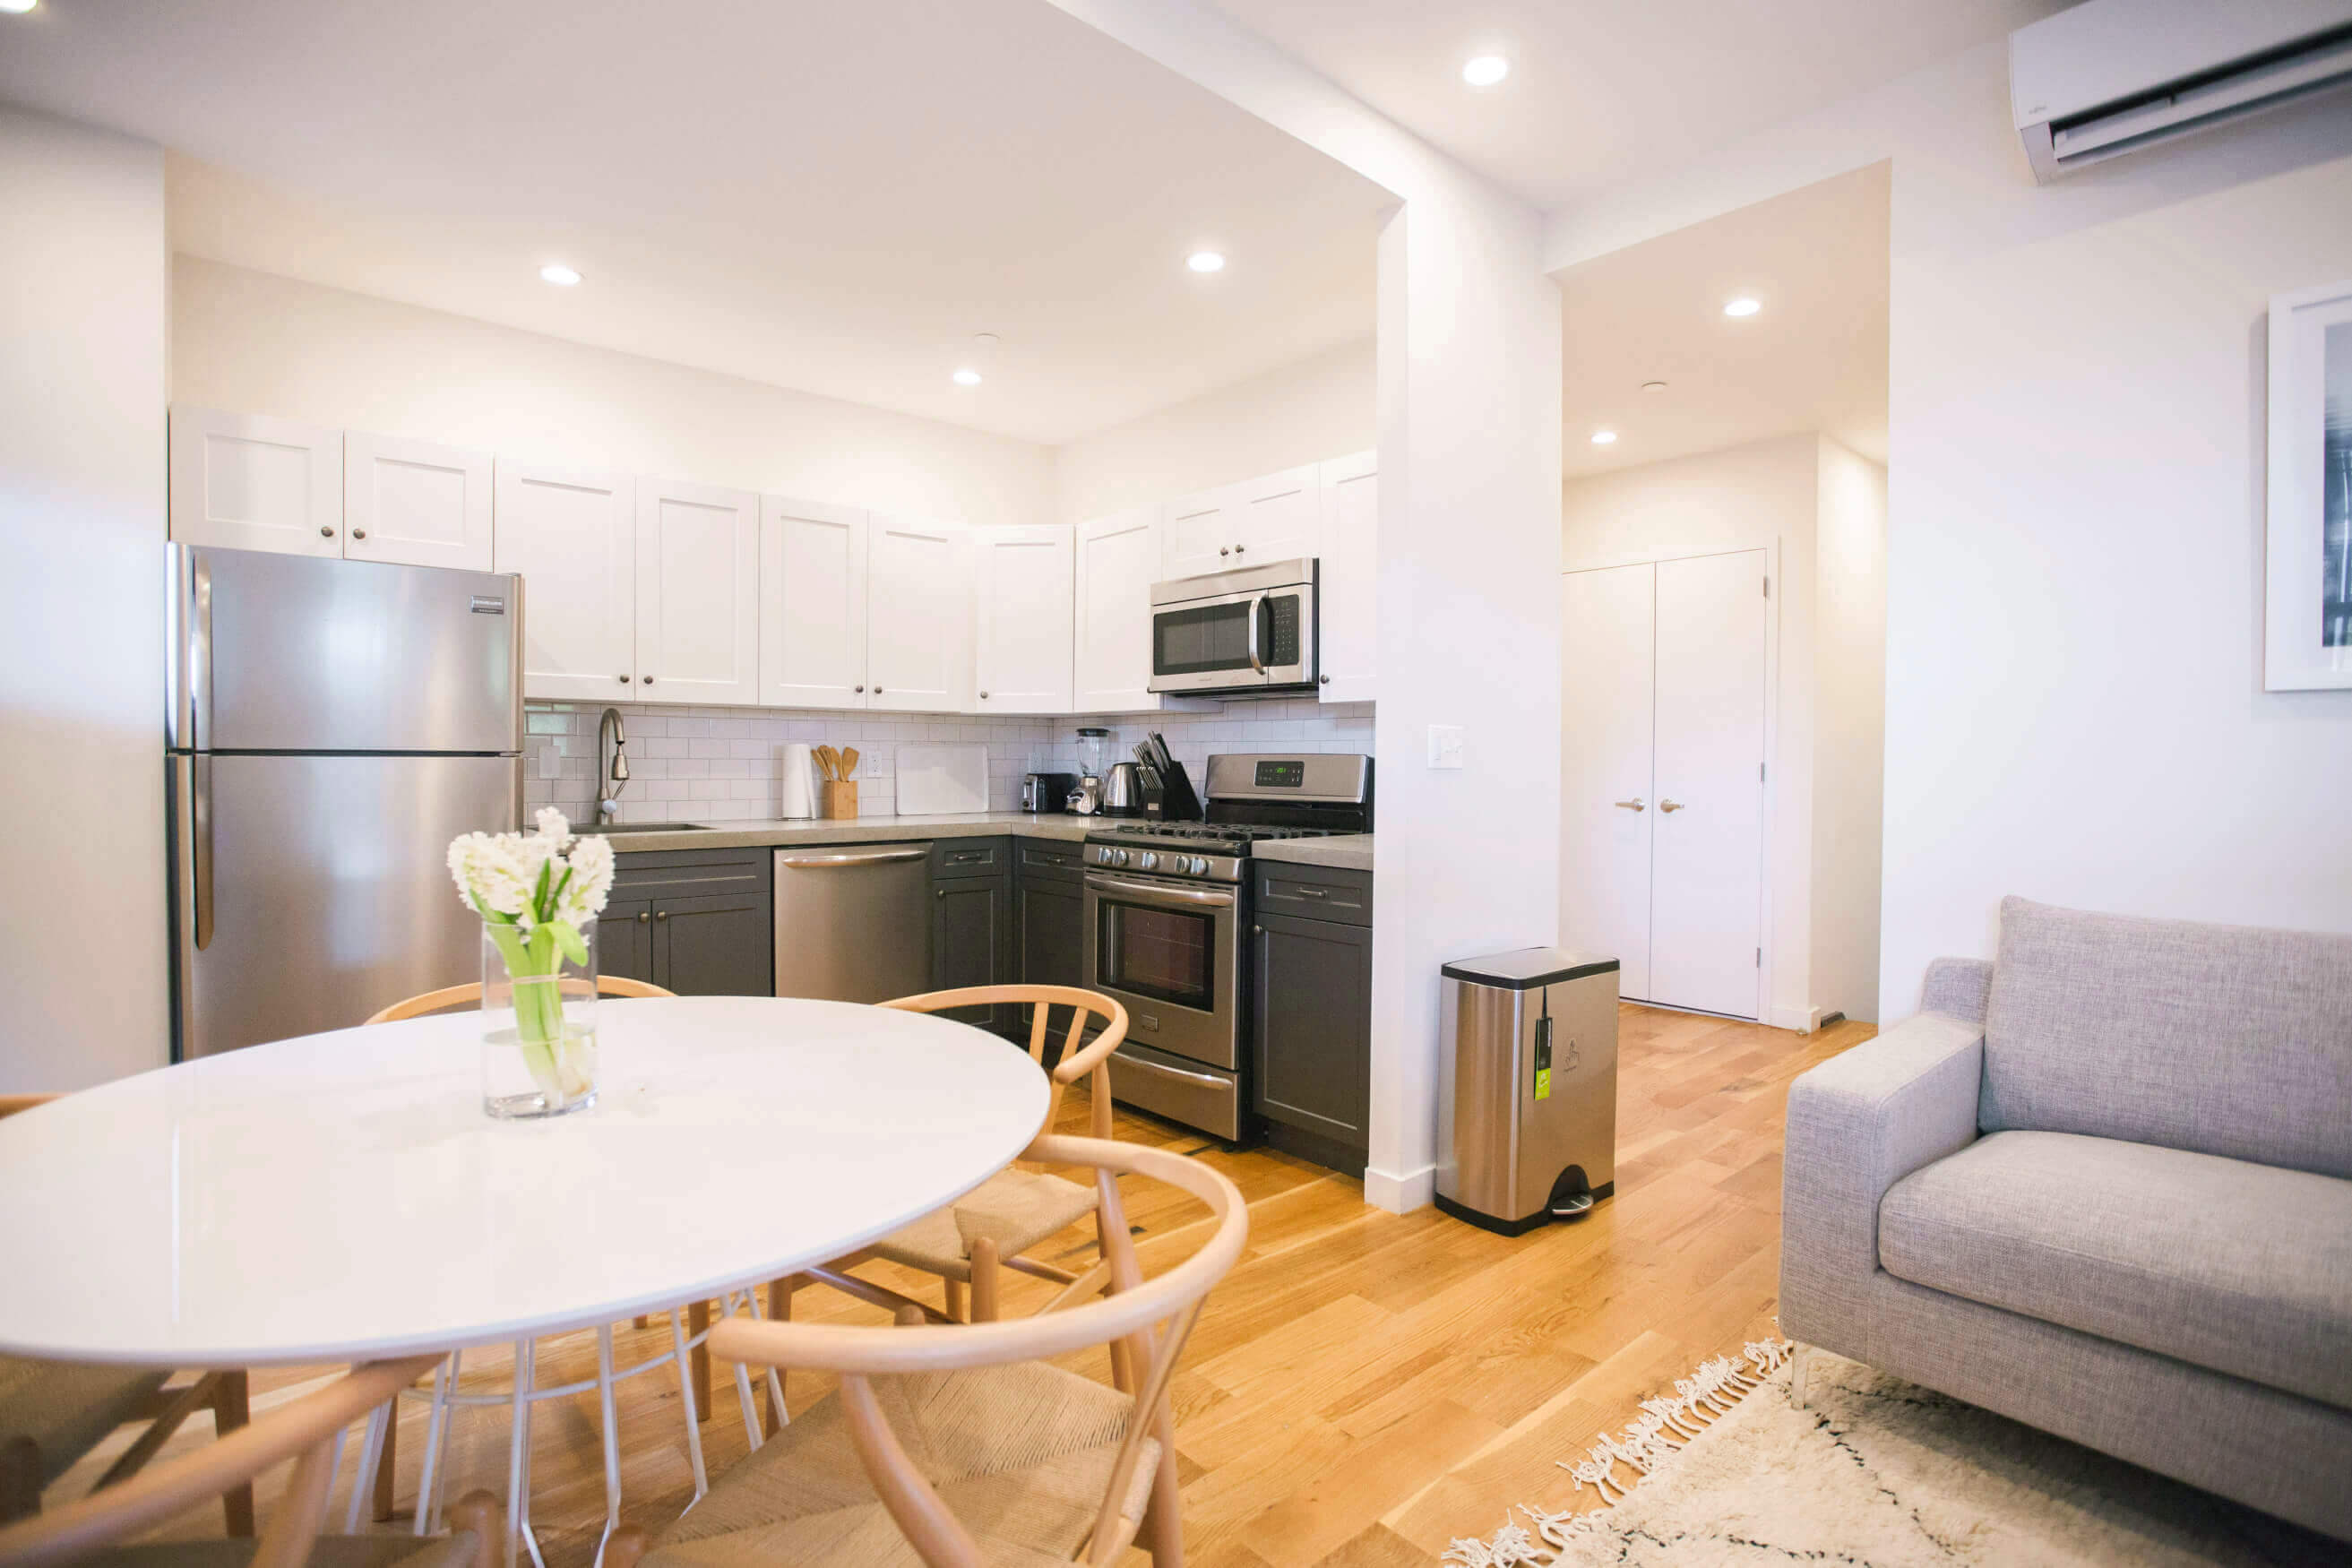 Pictured: a shared space at Common Havemeyer. All shared spaces in Common's coliving suites have a high-end kitchen and a fully furnished living room.